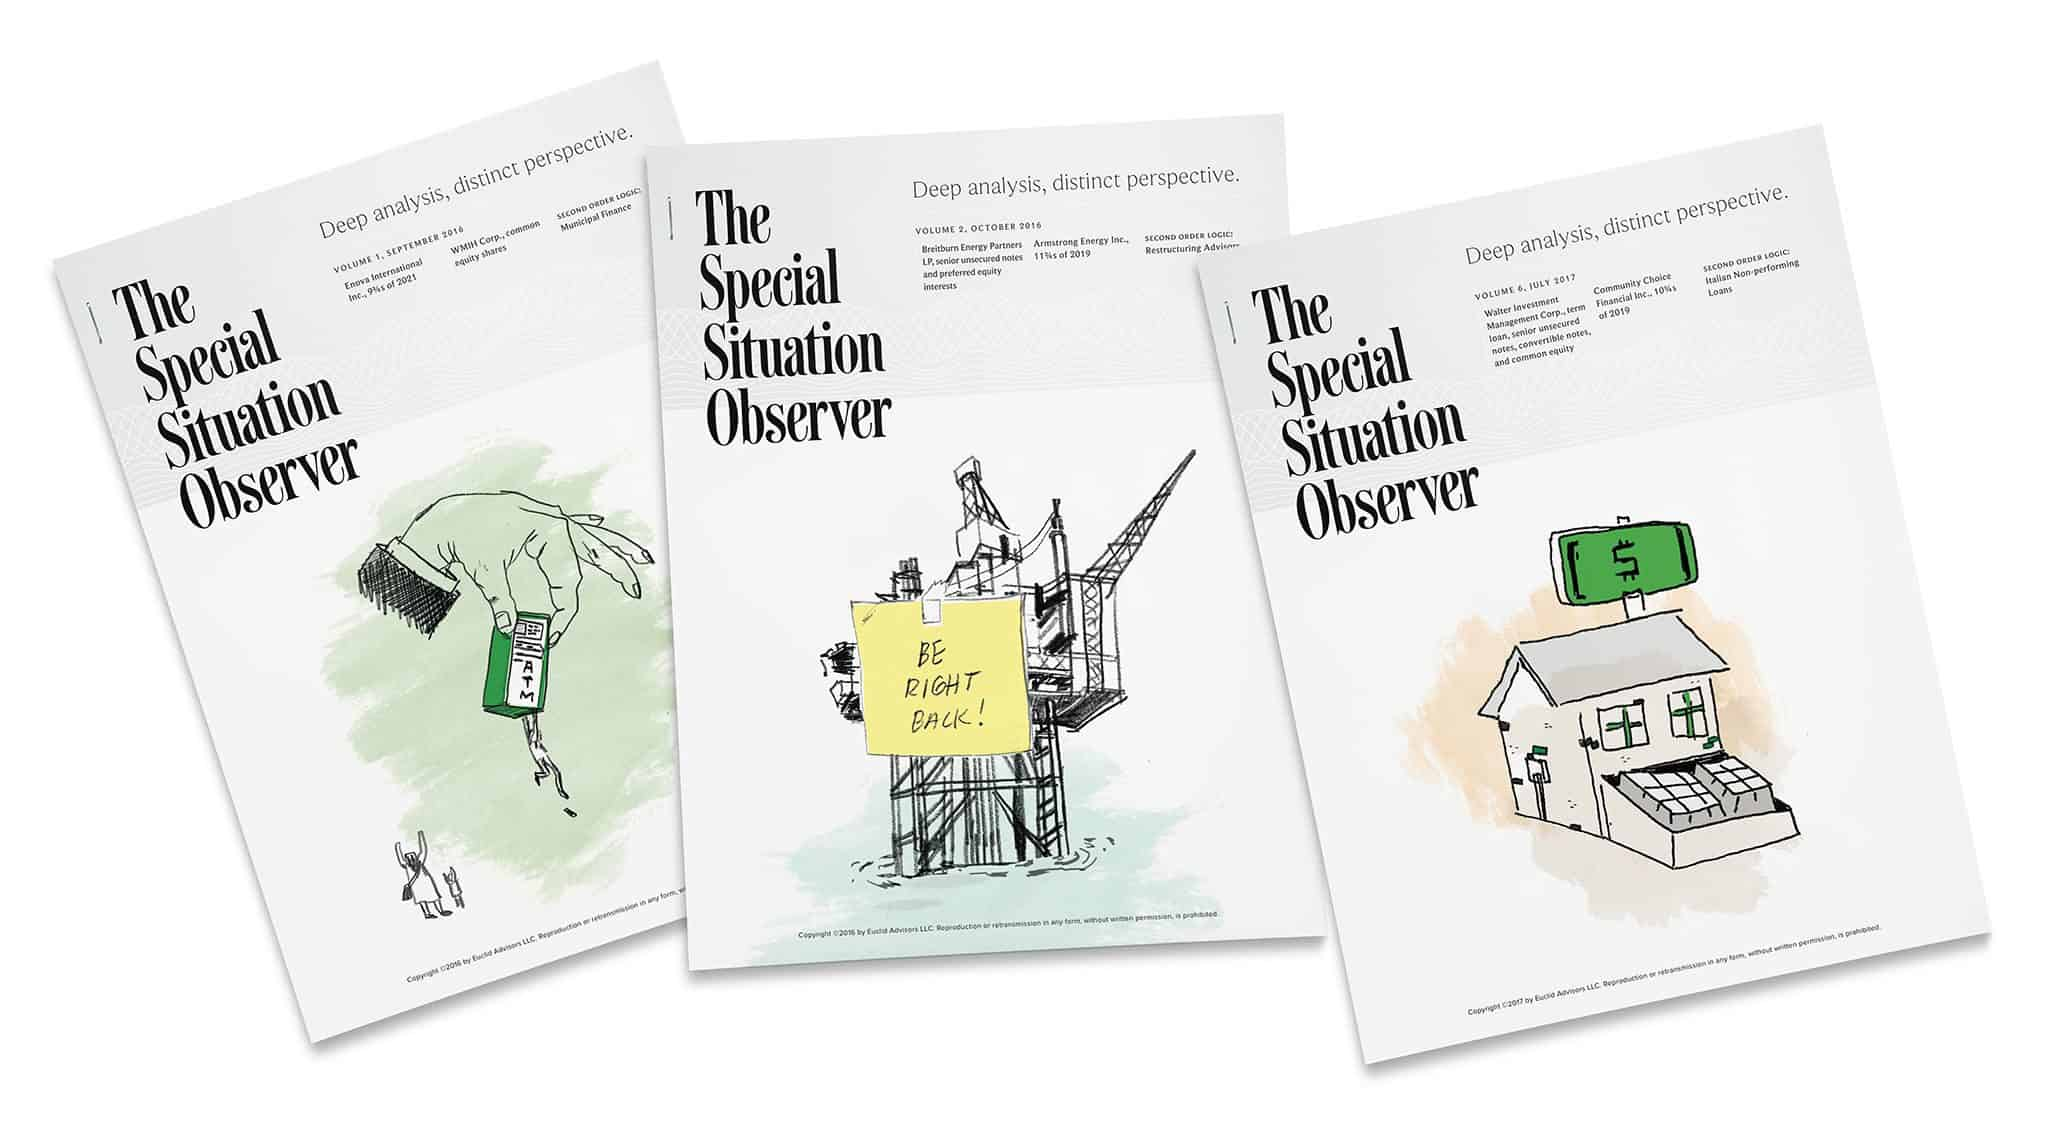 Publication design featuring illustrations by Rene Cruz for The Special Situation Observer | Designed by Field of Study: A branding and graphic design consultancy | Houston TX | Jennifer Blanco & John Earles